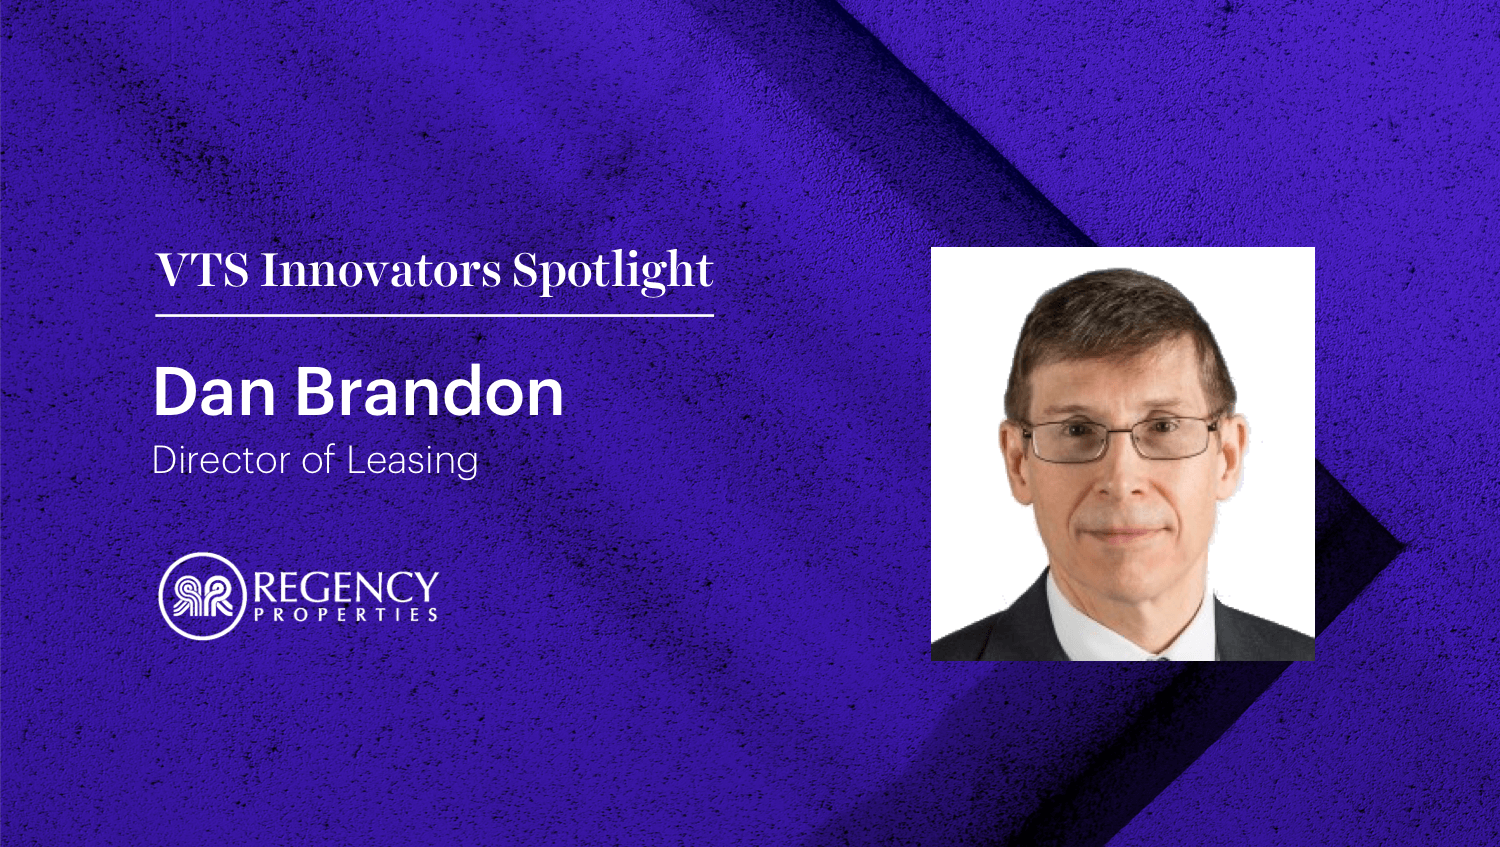 Regency Properties' Dan Brandon on Why Real-Time Information is Critical for Operating in Today's Retail Environment